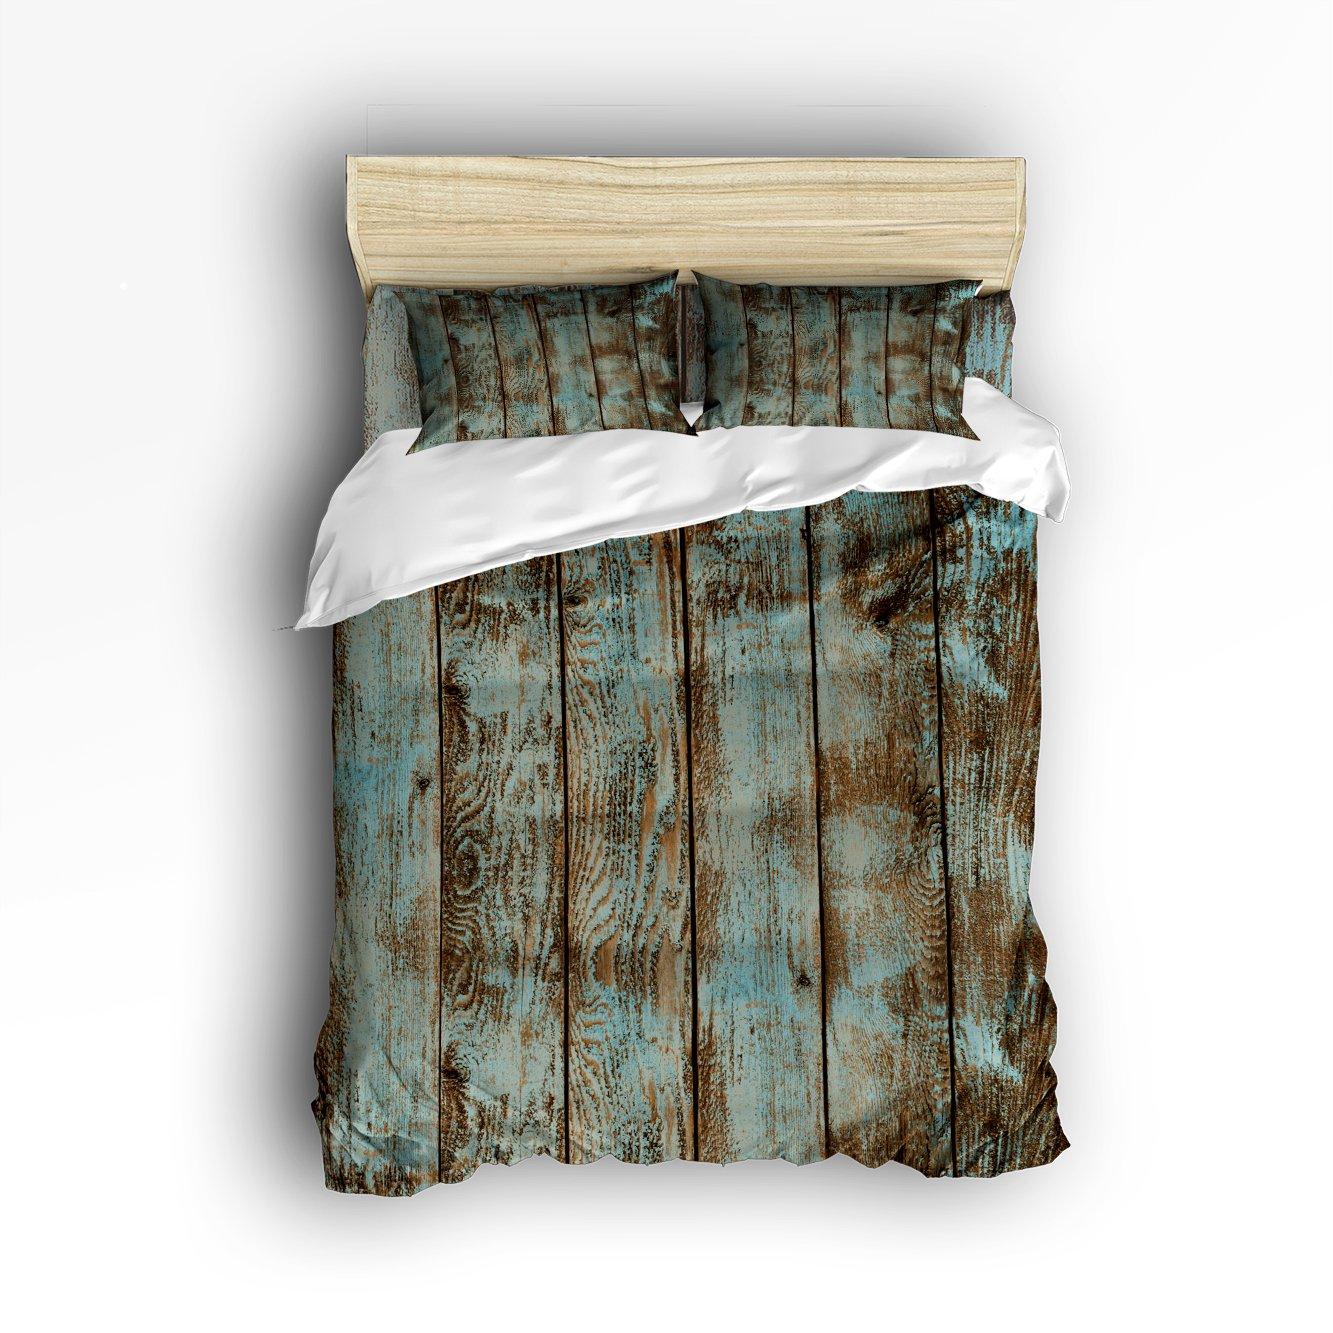 4 Pieces Home Comforter Bedding Set, Decorative Rustic Old Barn Wood Art Full Size by LovingIn (Image #1)